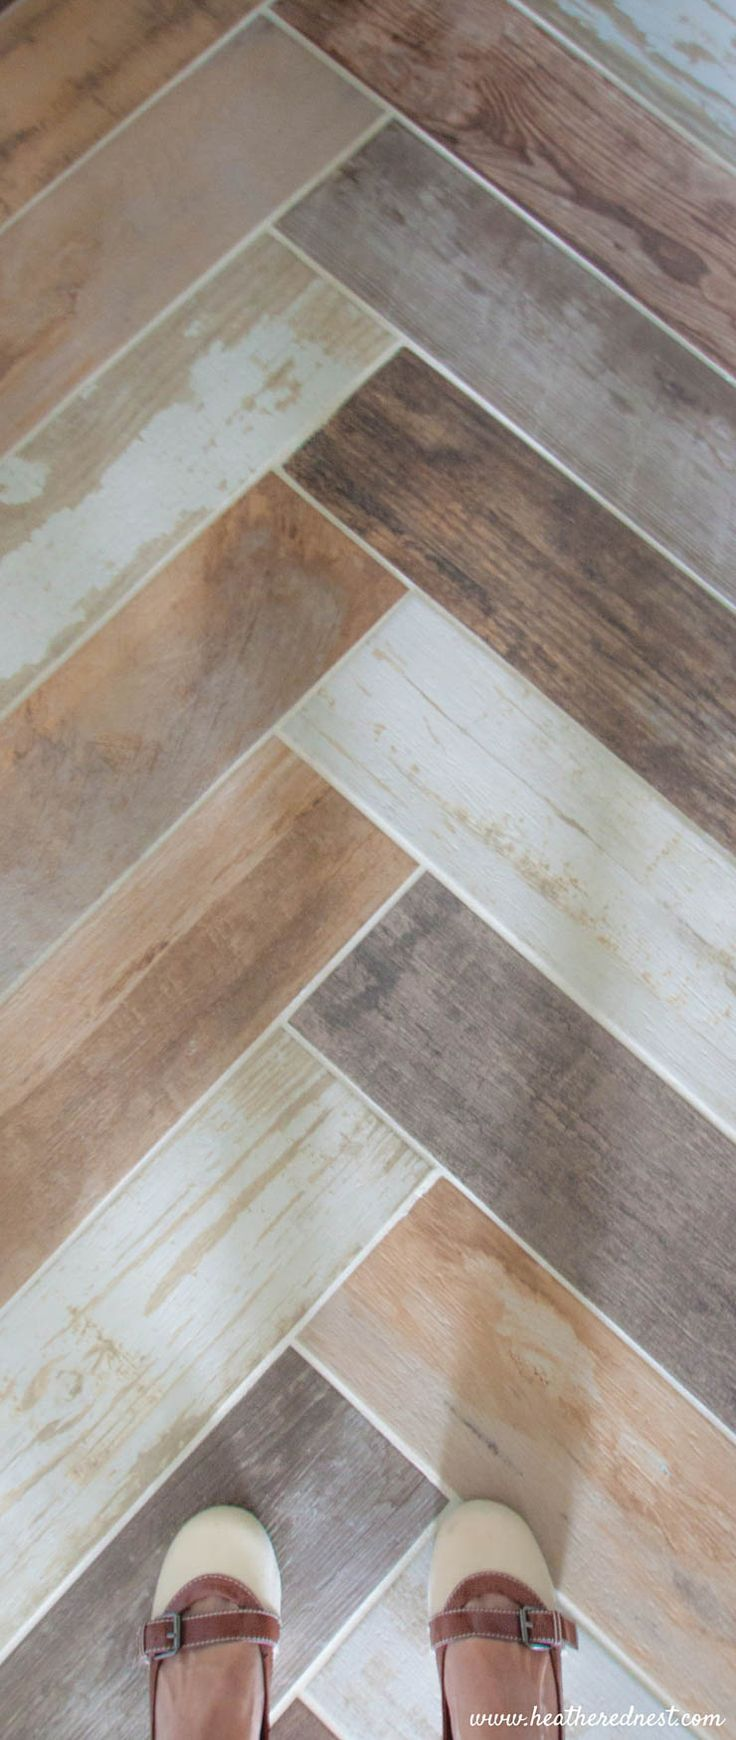 1000 Ideas About Faux Wood Tiles On Pinterest Tile Looks Like Wood Faux Wood Flooring And